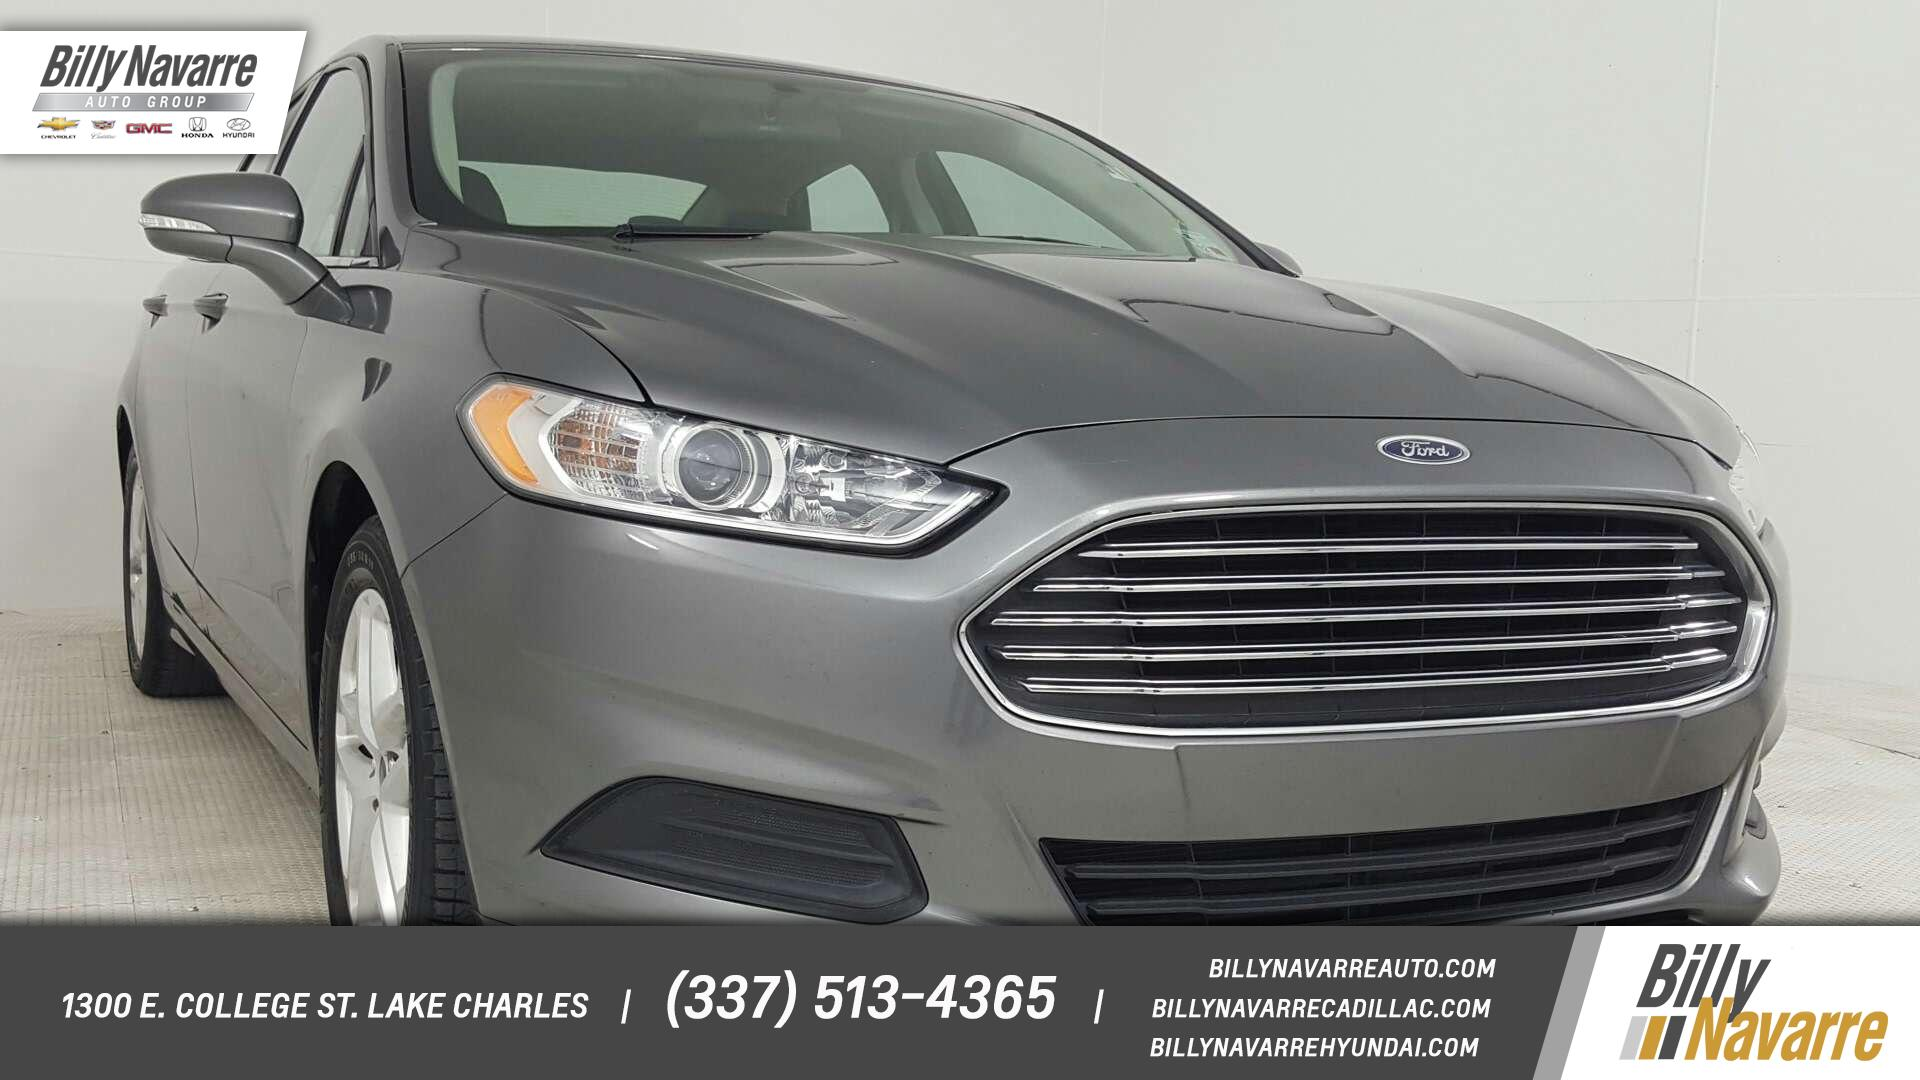 hight resolution of 2014 ford fusion vehicle photo in lake charles la 70607